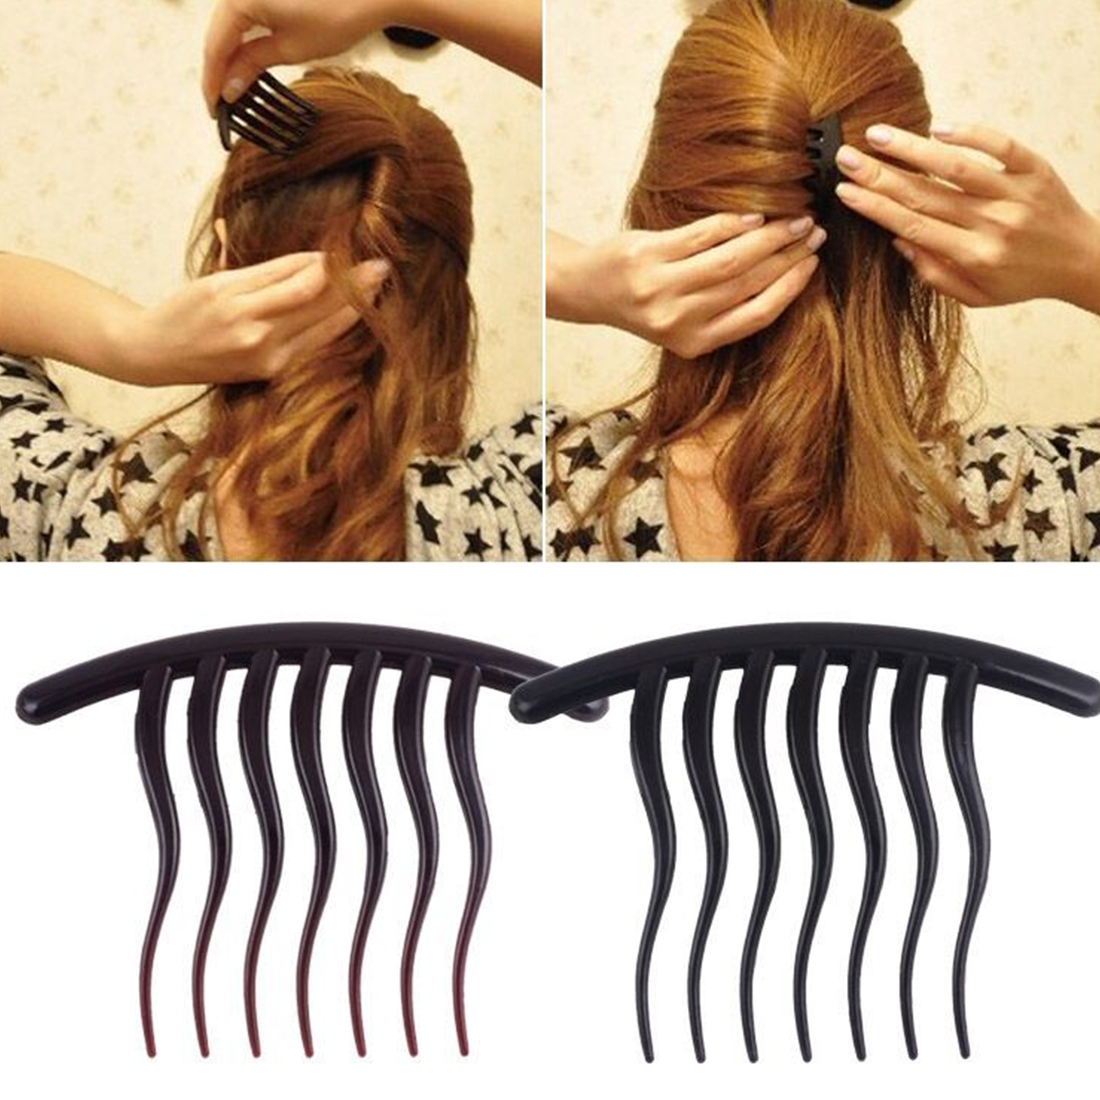 Black Comb Beauty Health Seven-Tooth Resin Coil Hair Comb Clips Hair Accessories Hairdressing Styling Tools